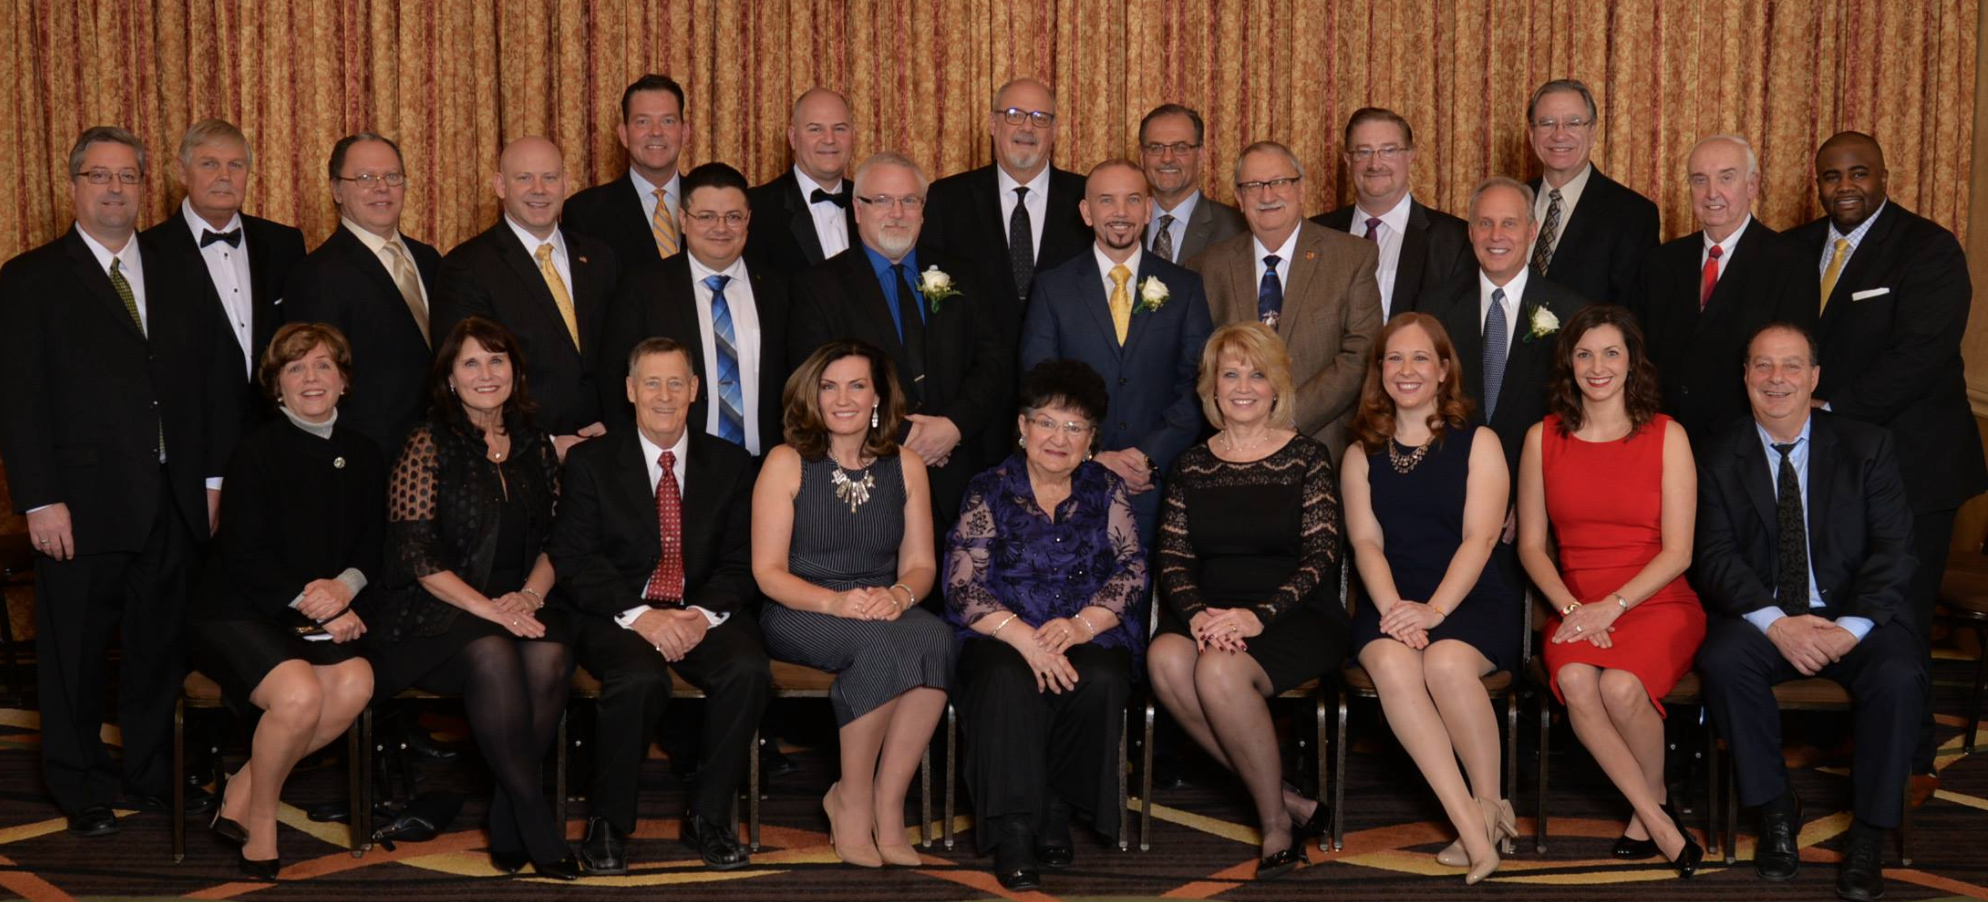 Oak Lawn Chamber Induction Ceremony Full Board Photo